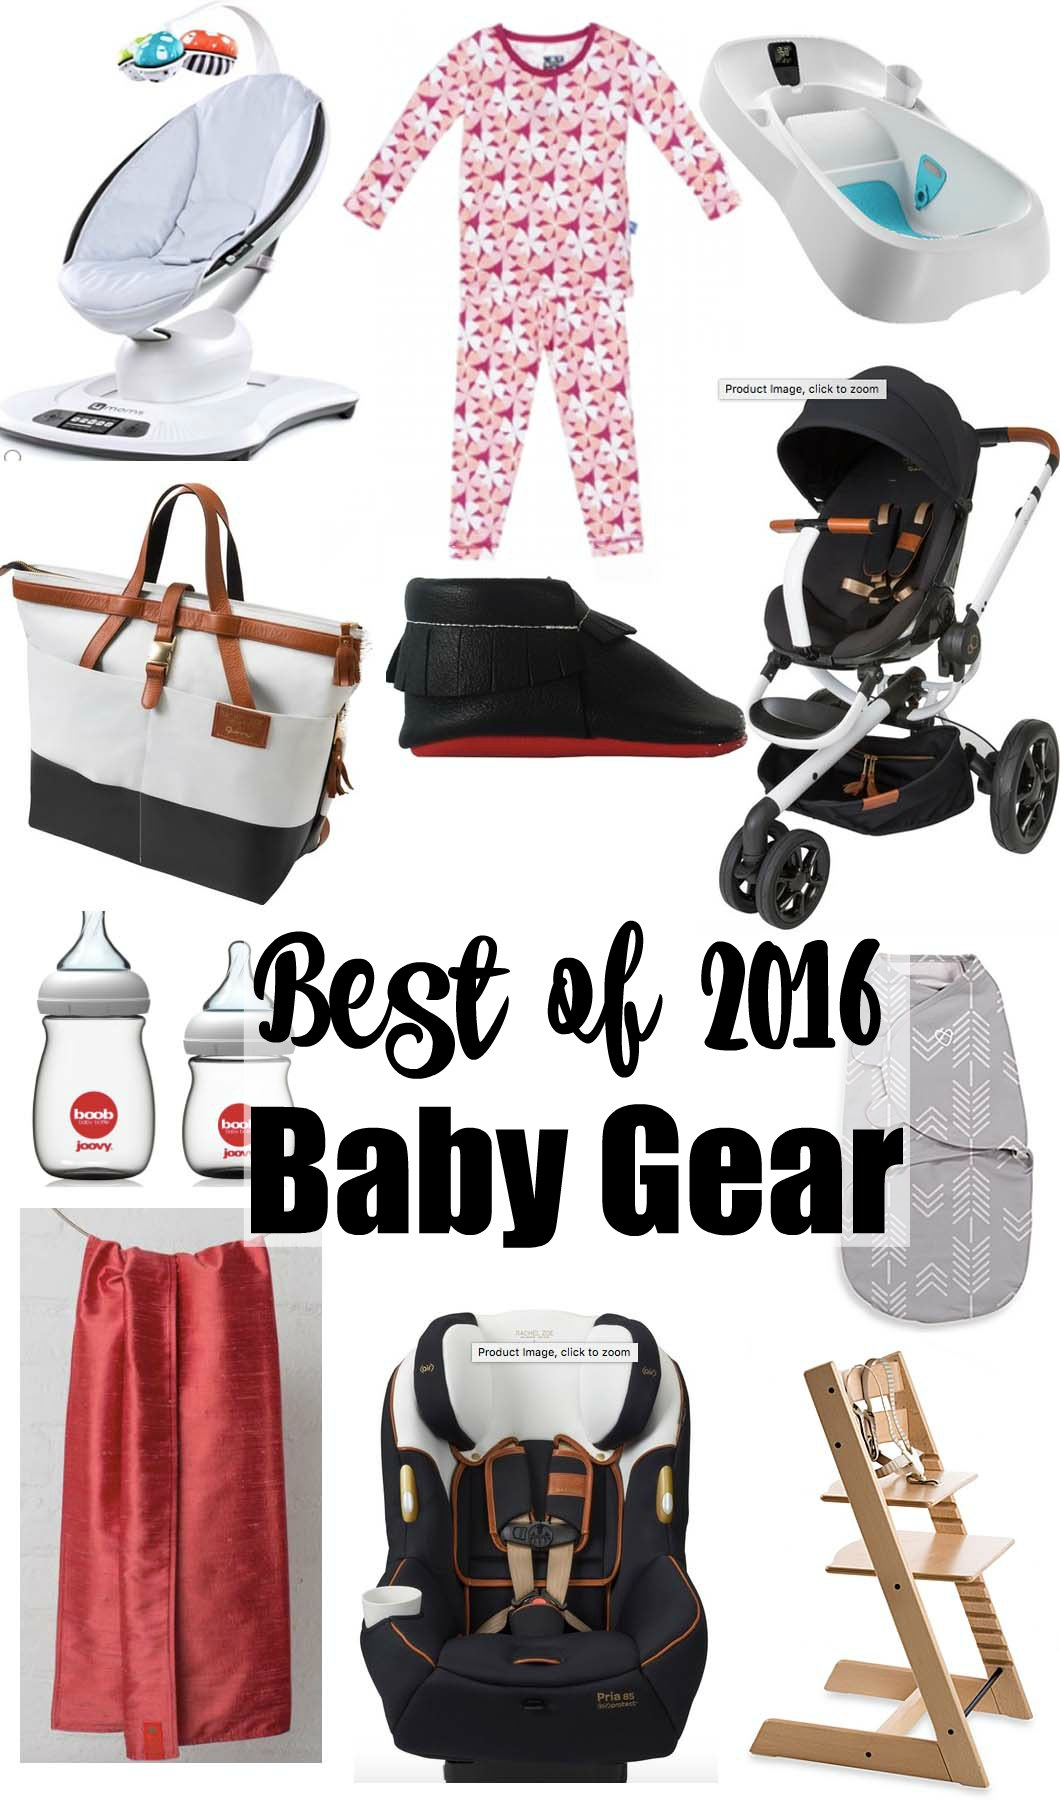 Best of 2016 Baby gear